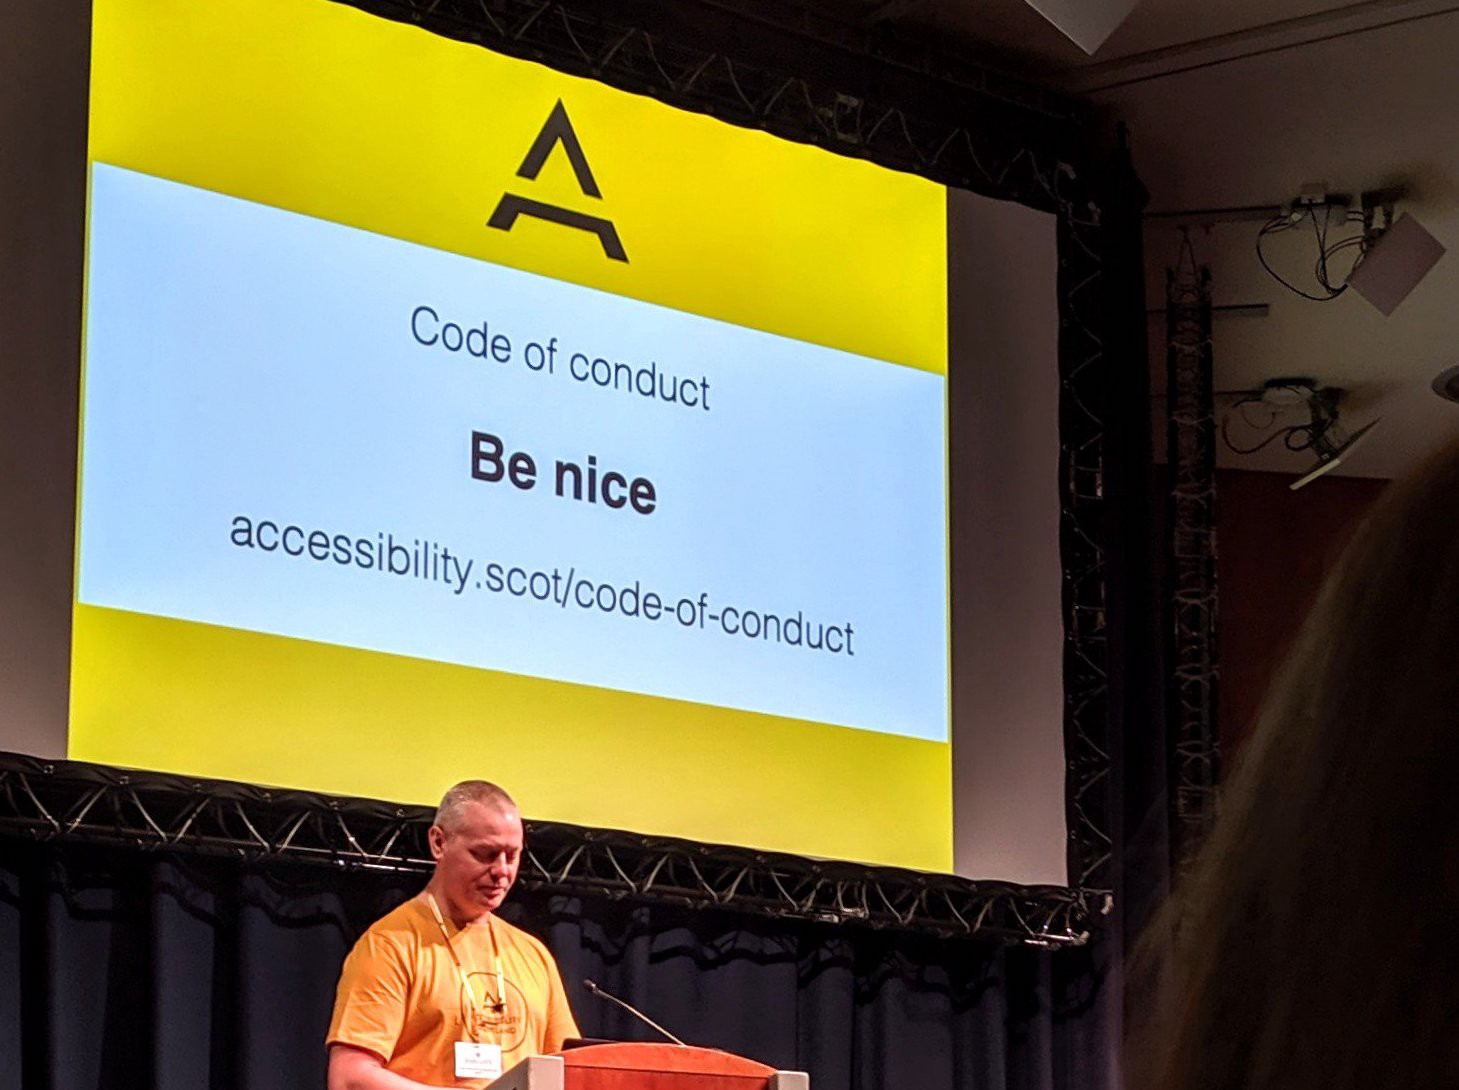 Kevin White — Organiser — on stage with the slide for the code of conduct saying: Be nice